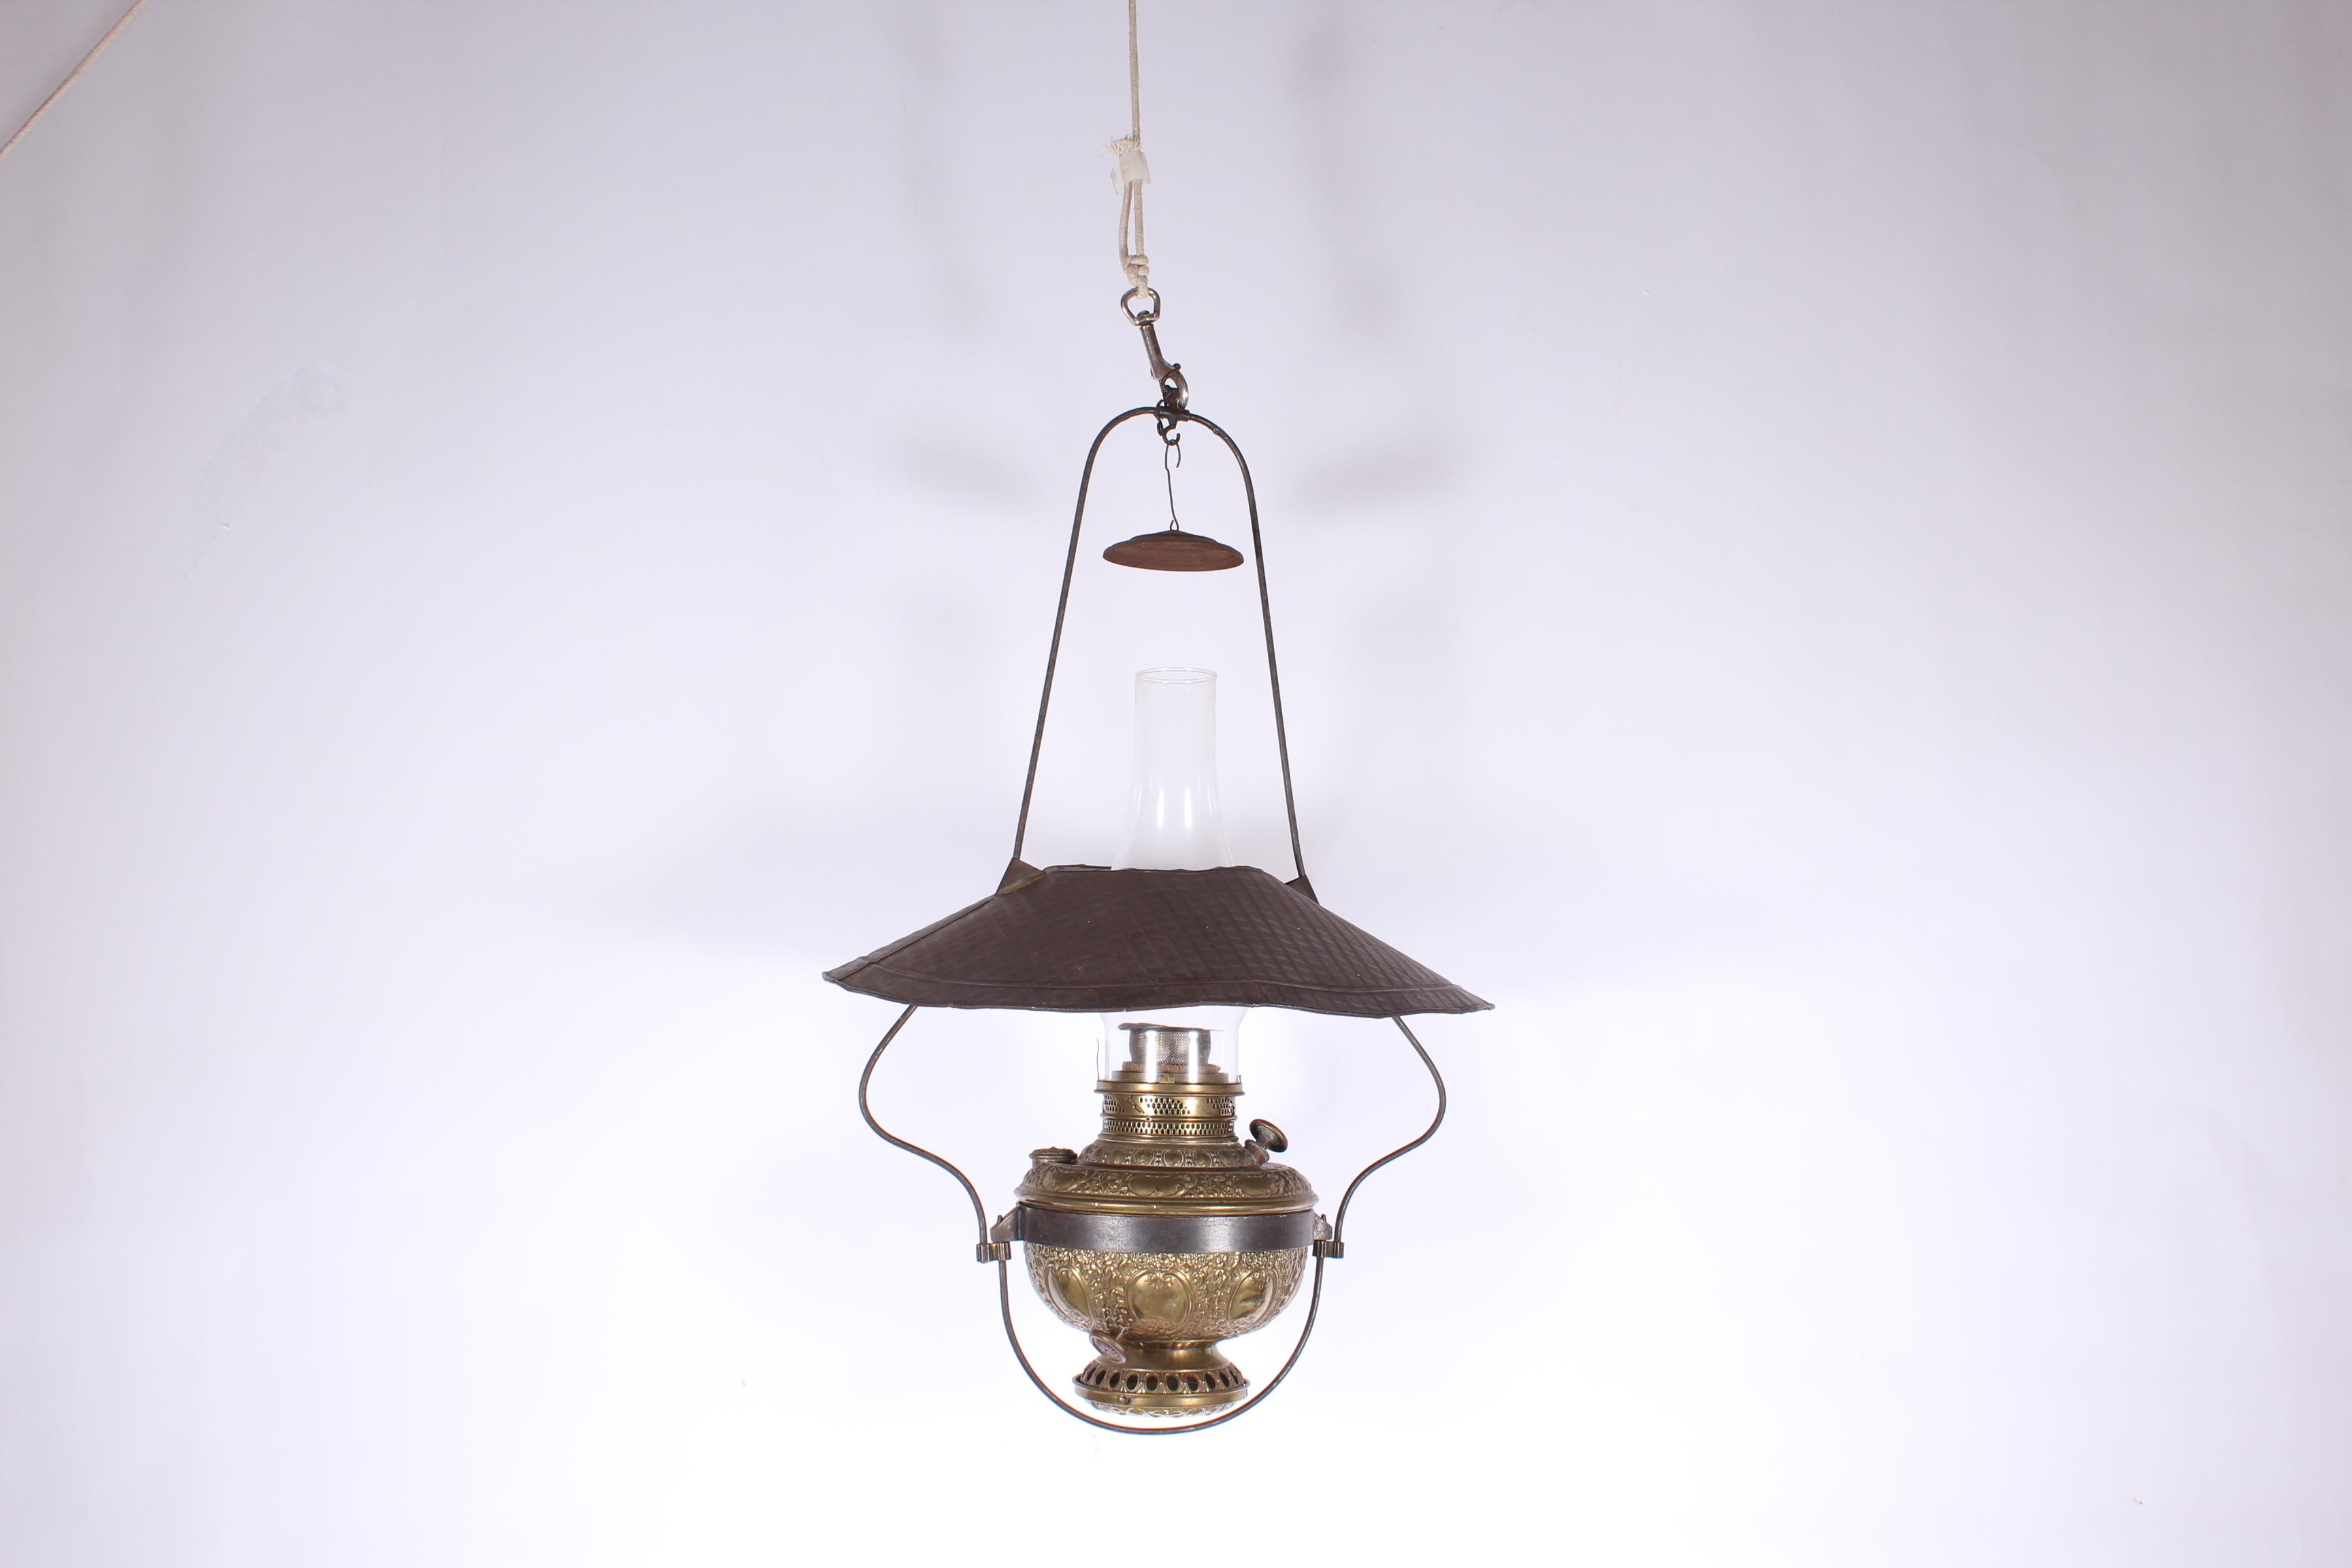 Lot Antique Brass Hanging Oil Lamp New Rochester